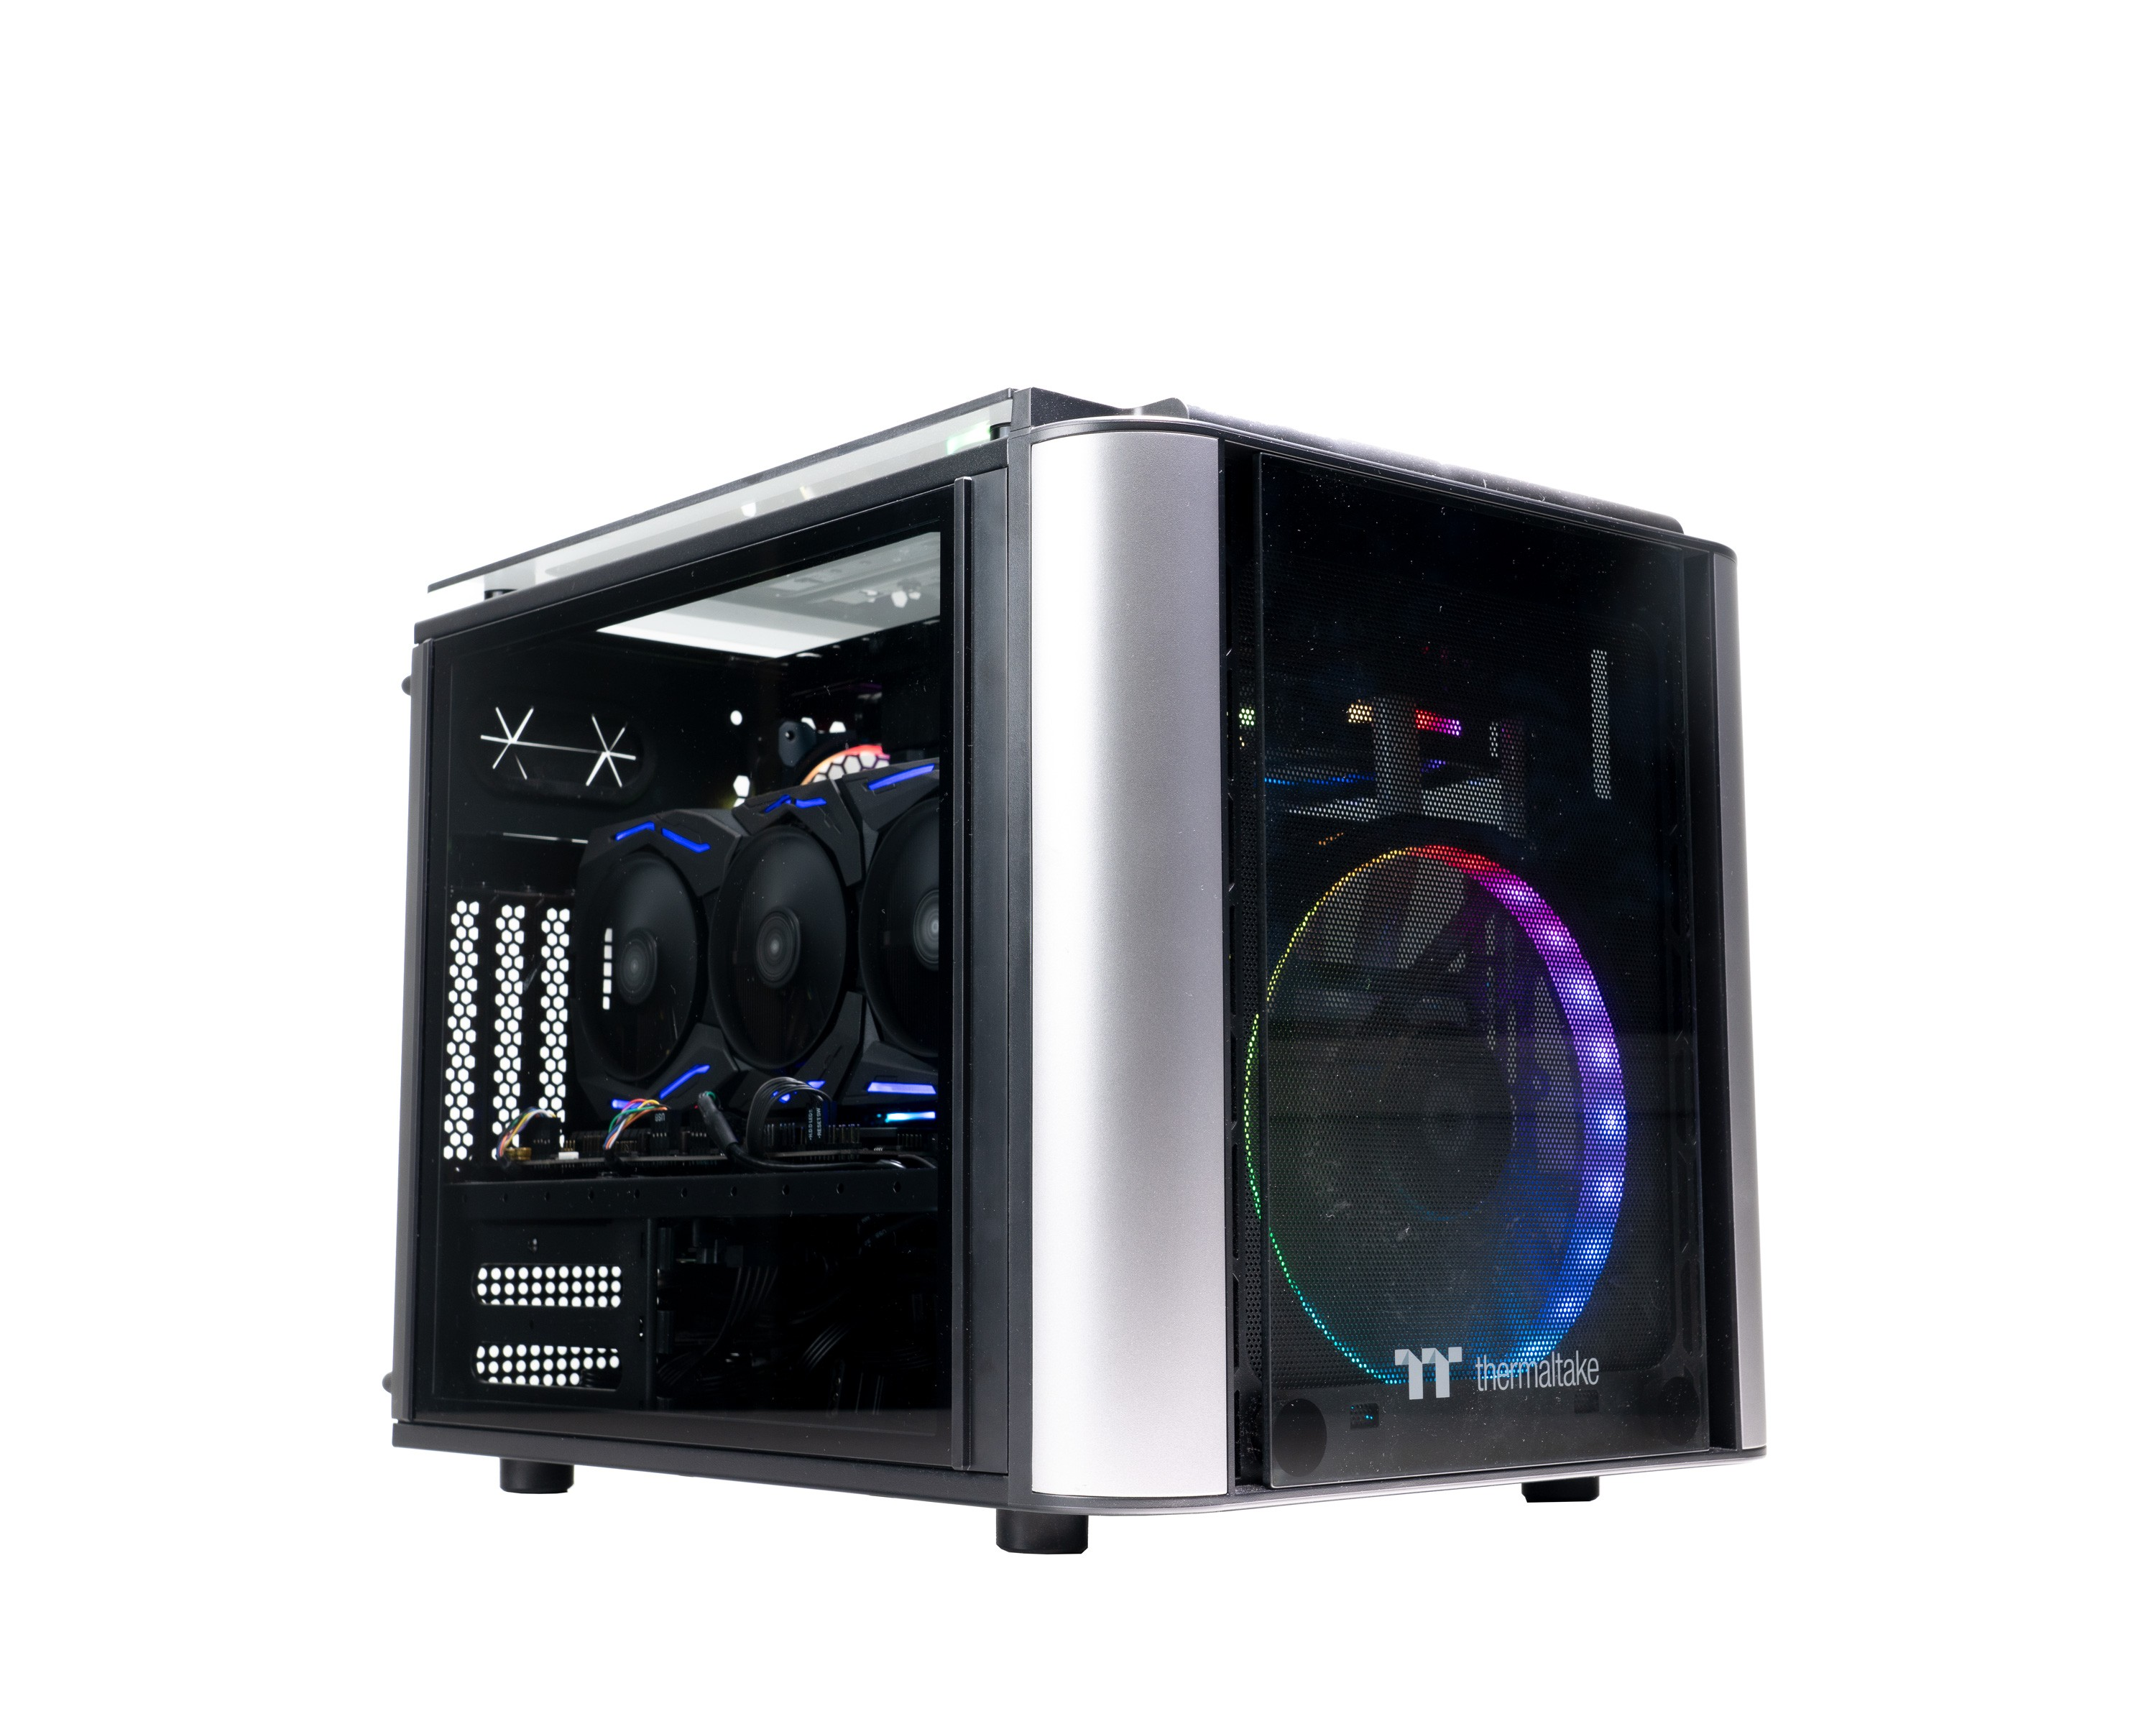 LCGS Crusader Water Cooled Gaming System - RTX 2070 SUPER